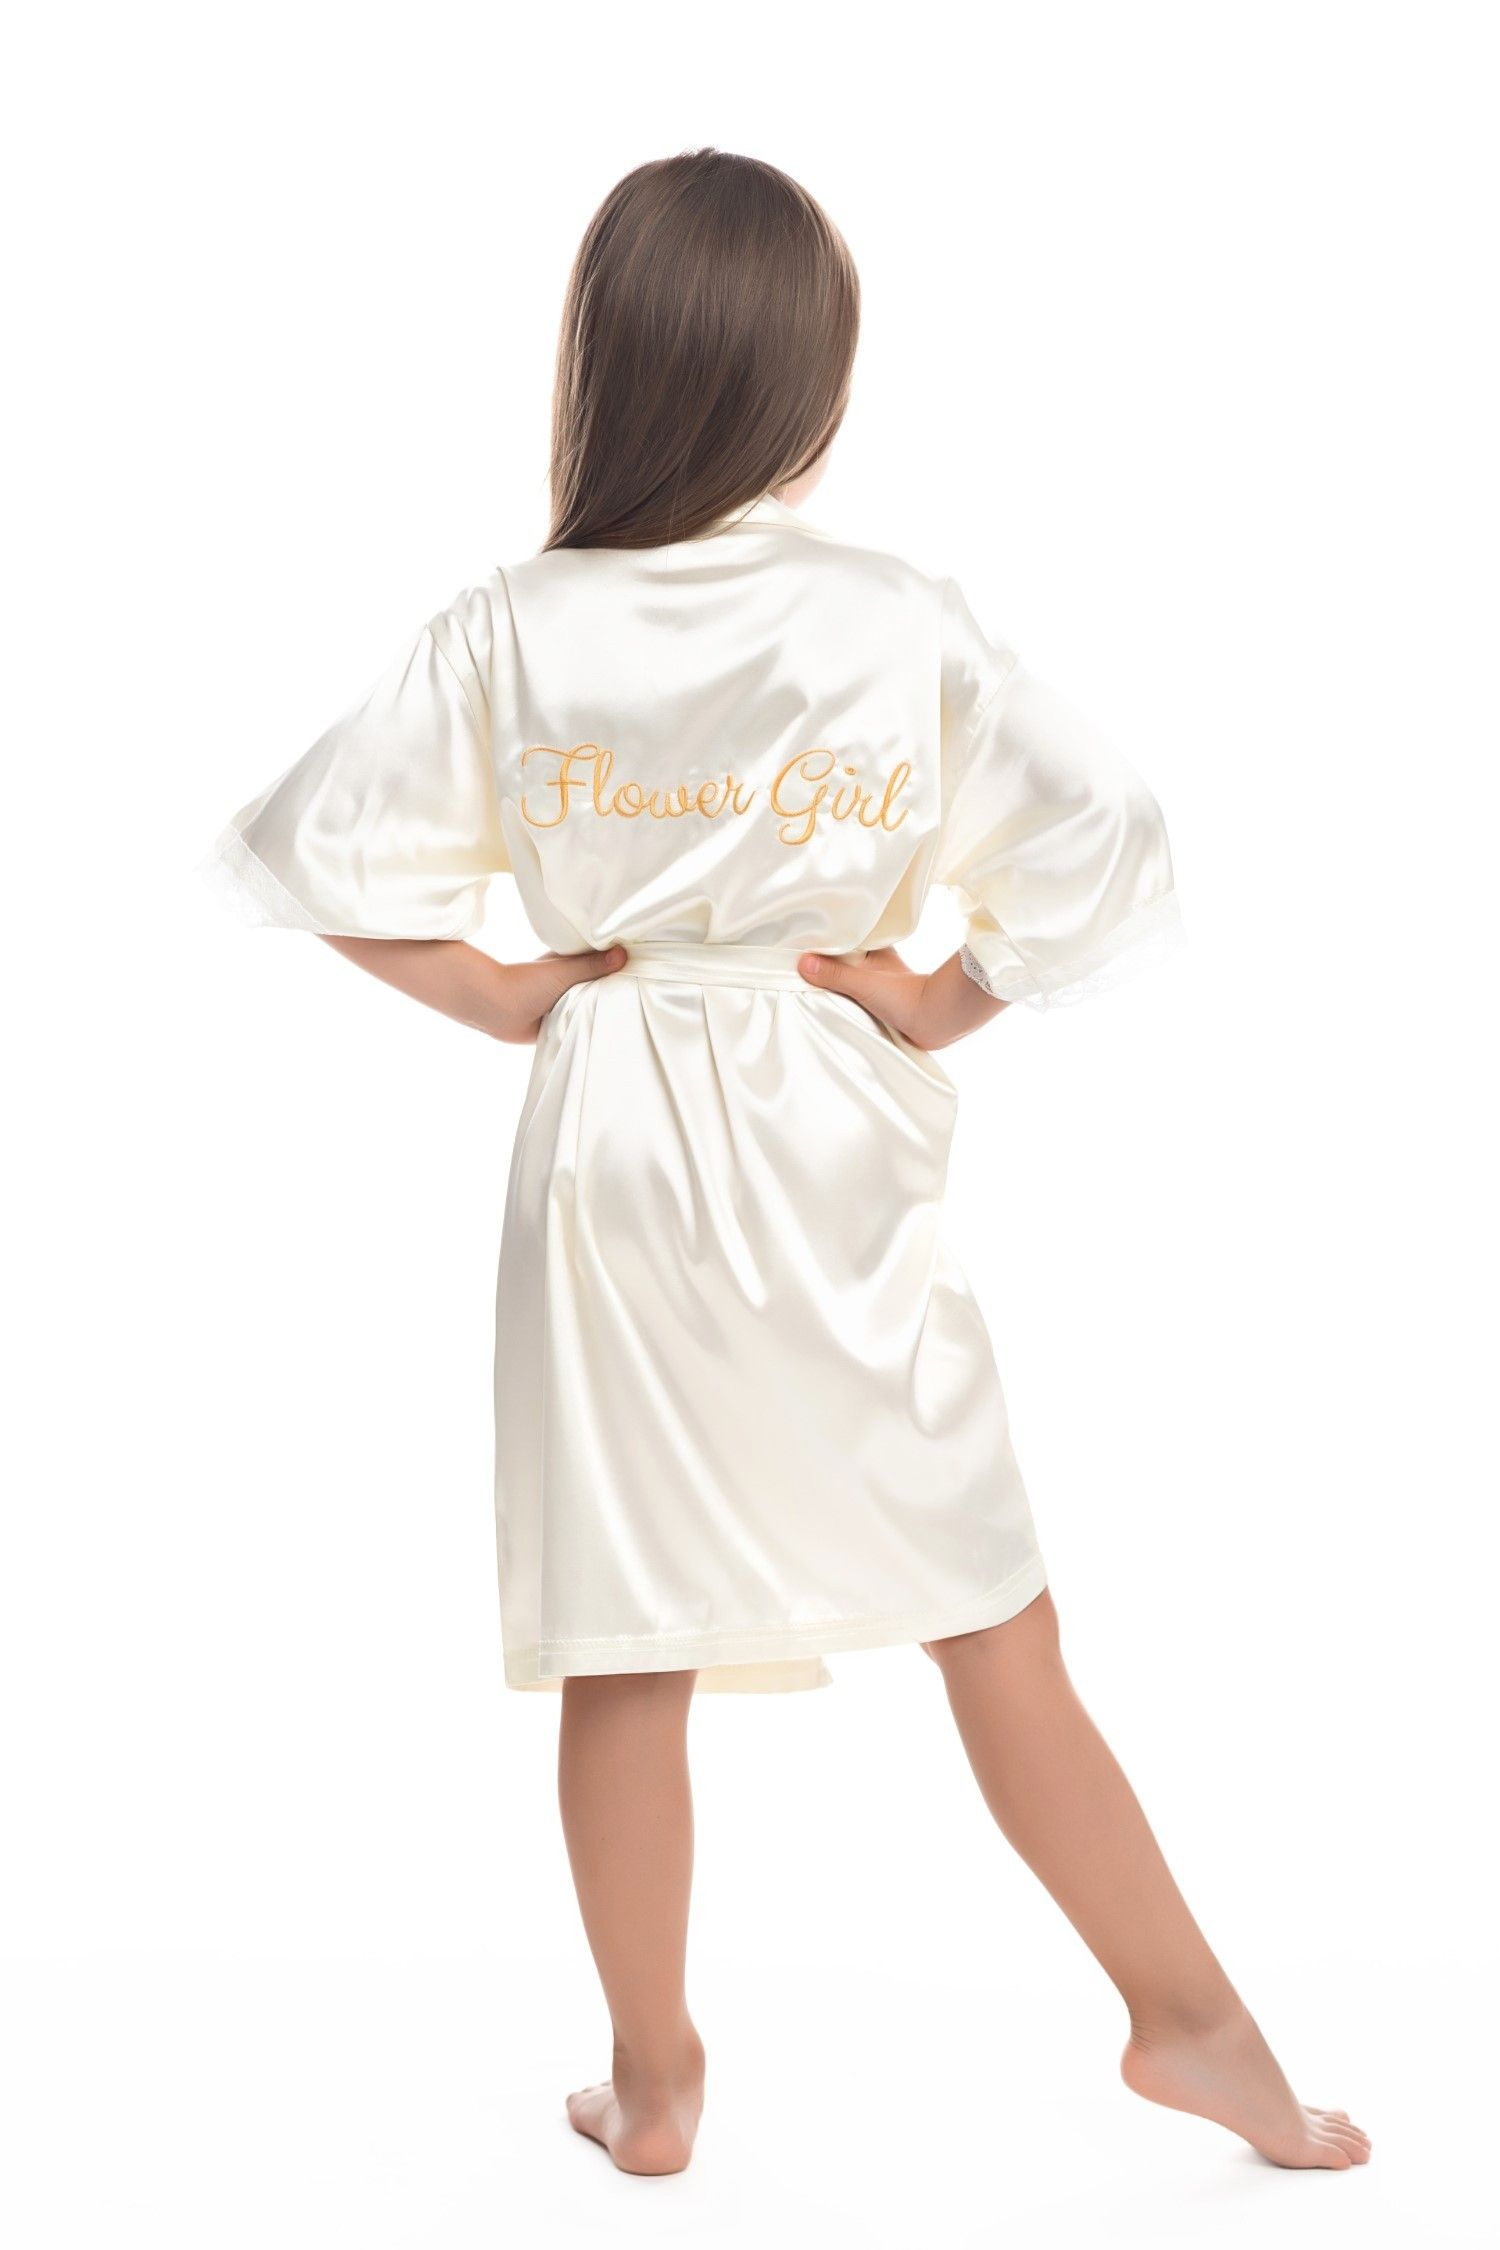 Kids Robe Spa Party Robes Boys Robe Kids Robes Bridal Party Robes Bridesmaids Gifts Girls Robe Birthday Party Robes Flower Girl Robe